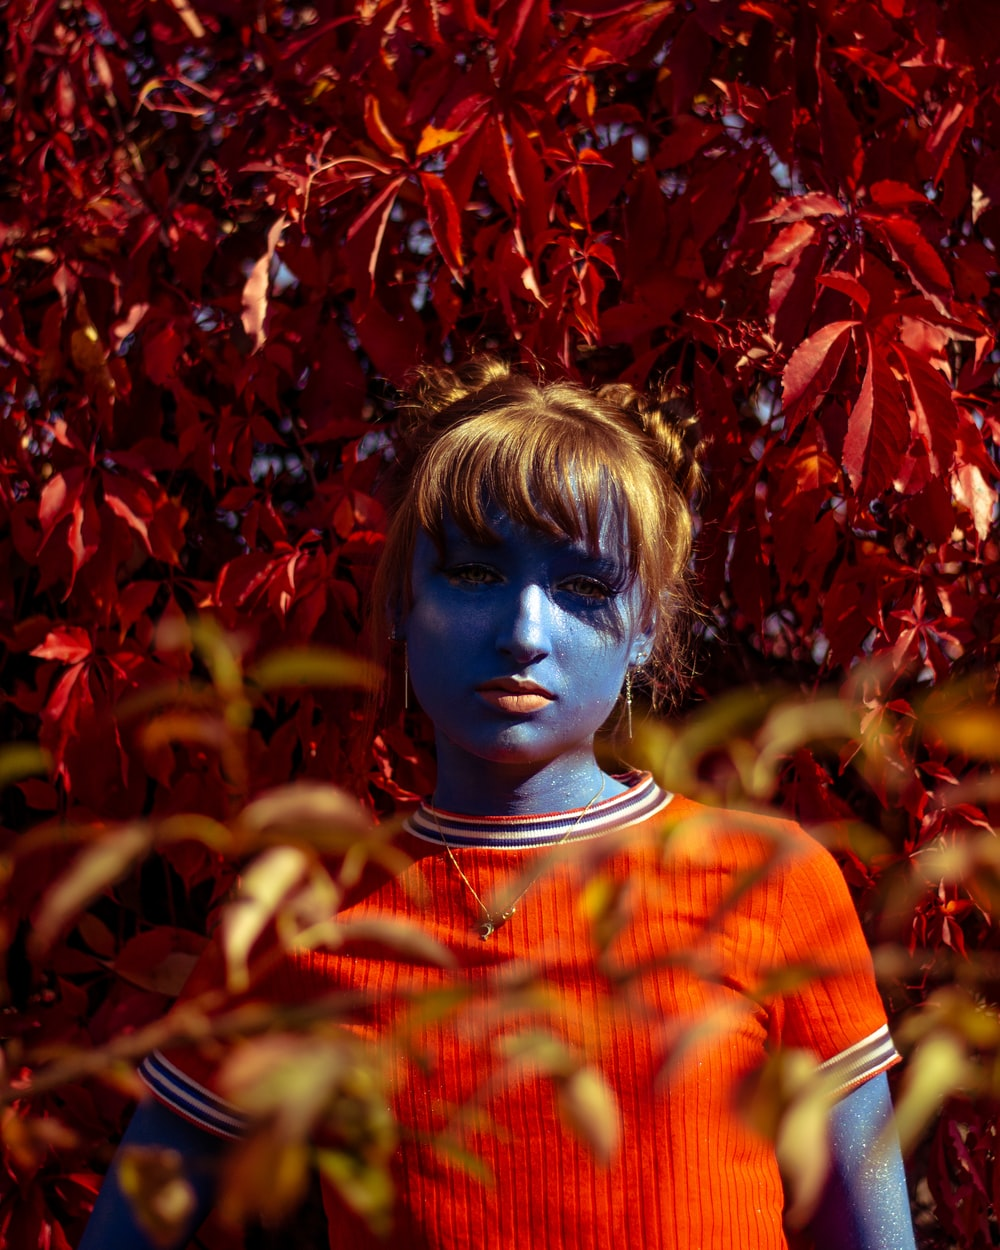 blue skinned girl wearing red crew-neck shirt surrounded by red maple leaves